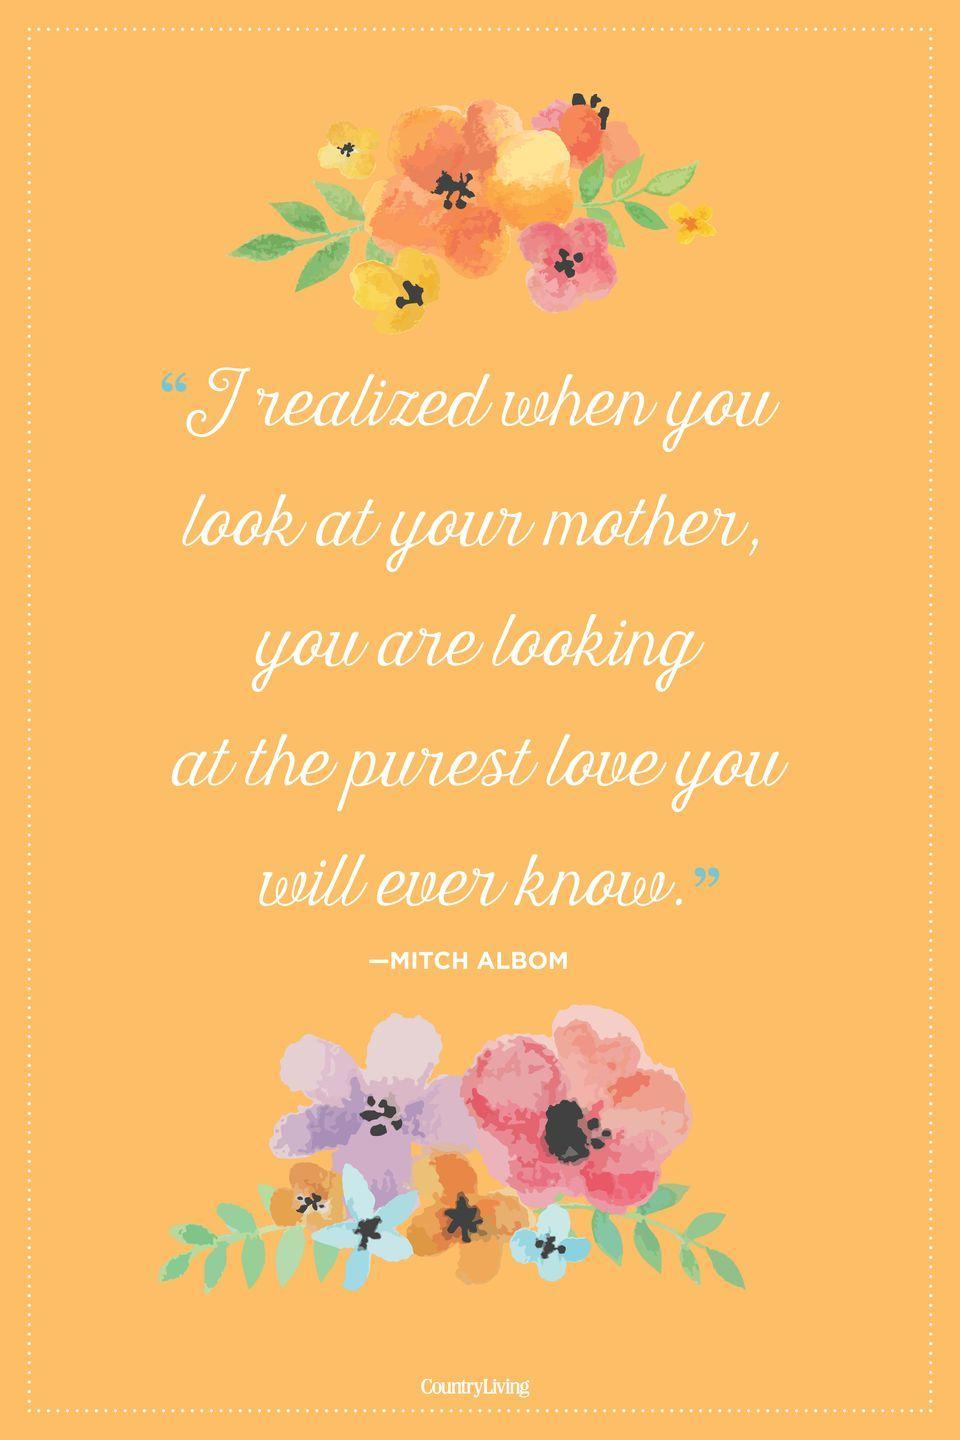 "<p>""I realized when you look at your mother, you are looking at the purest love you will ever know.""</p>"